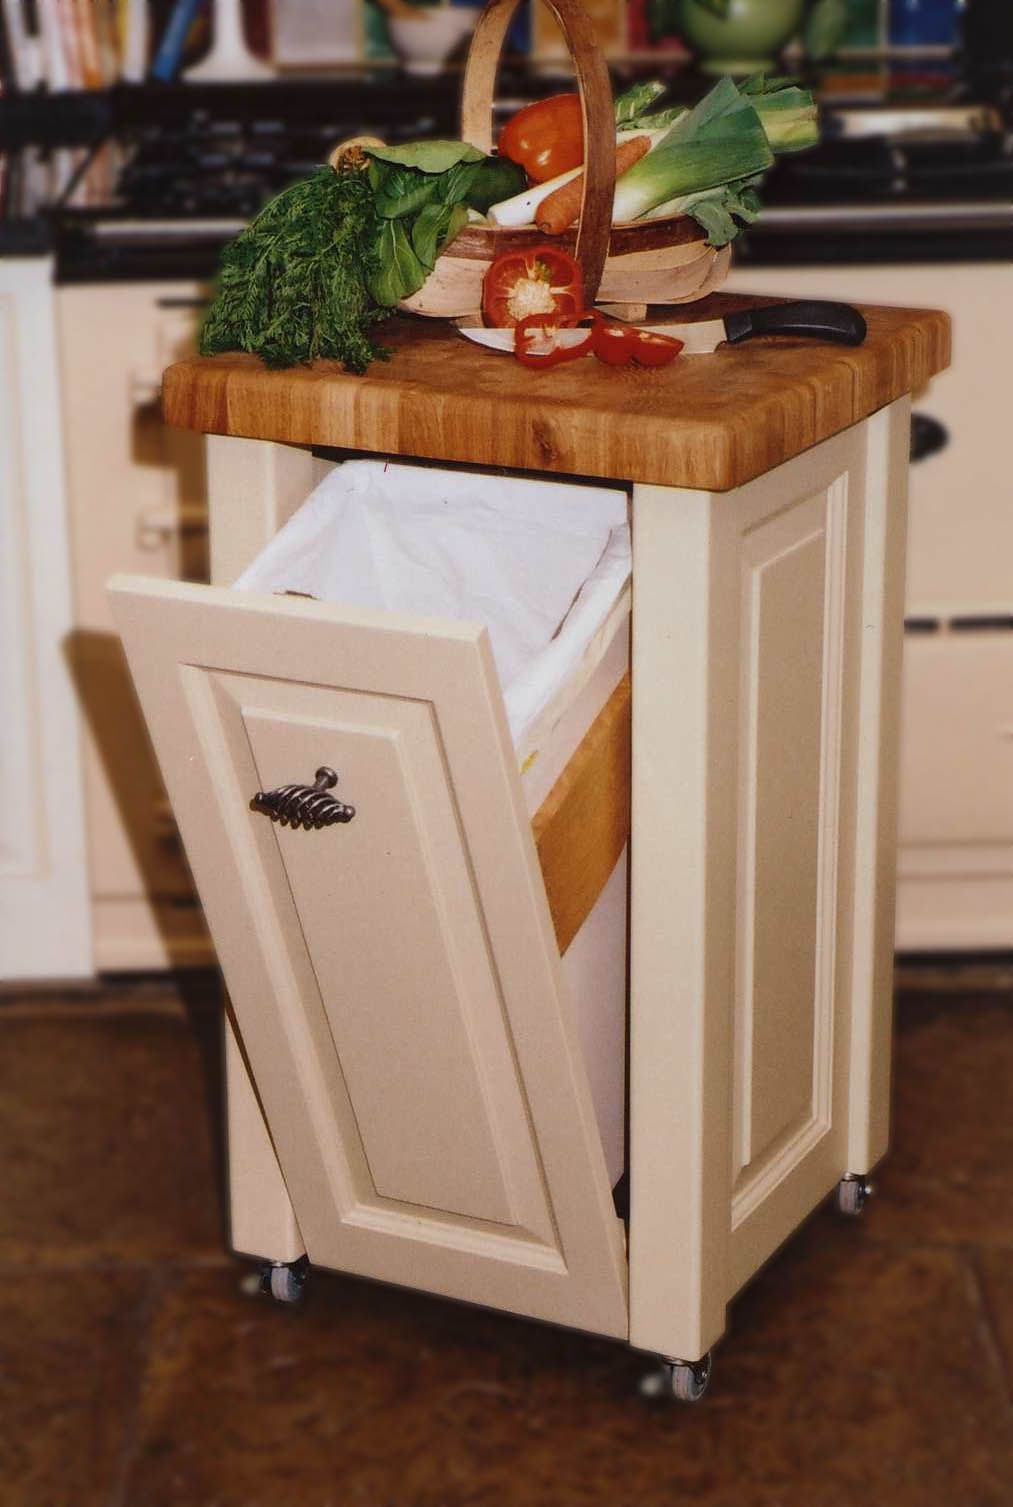 Mobile Kitchen Island Kitchen Islands Mobile Kitchen Islands Worldwide For Over 18